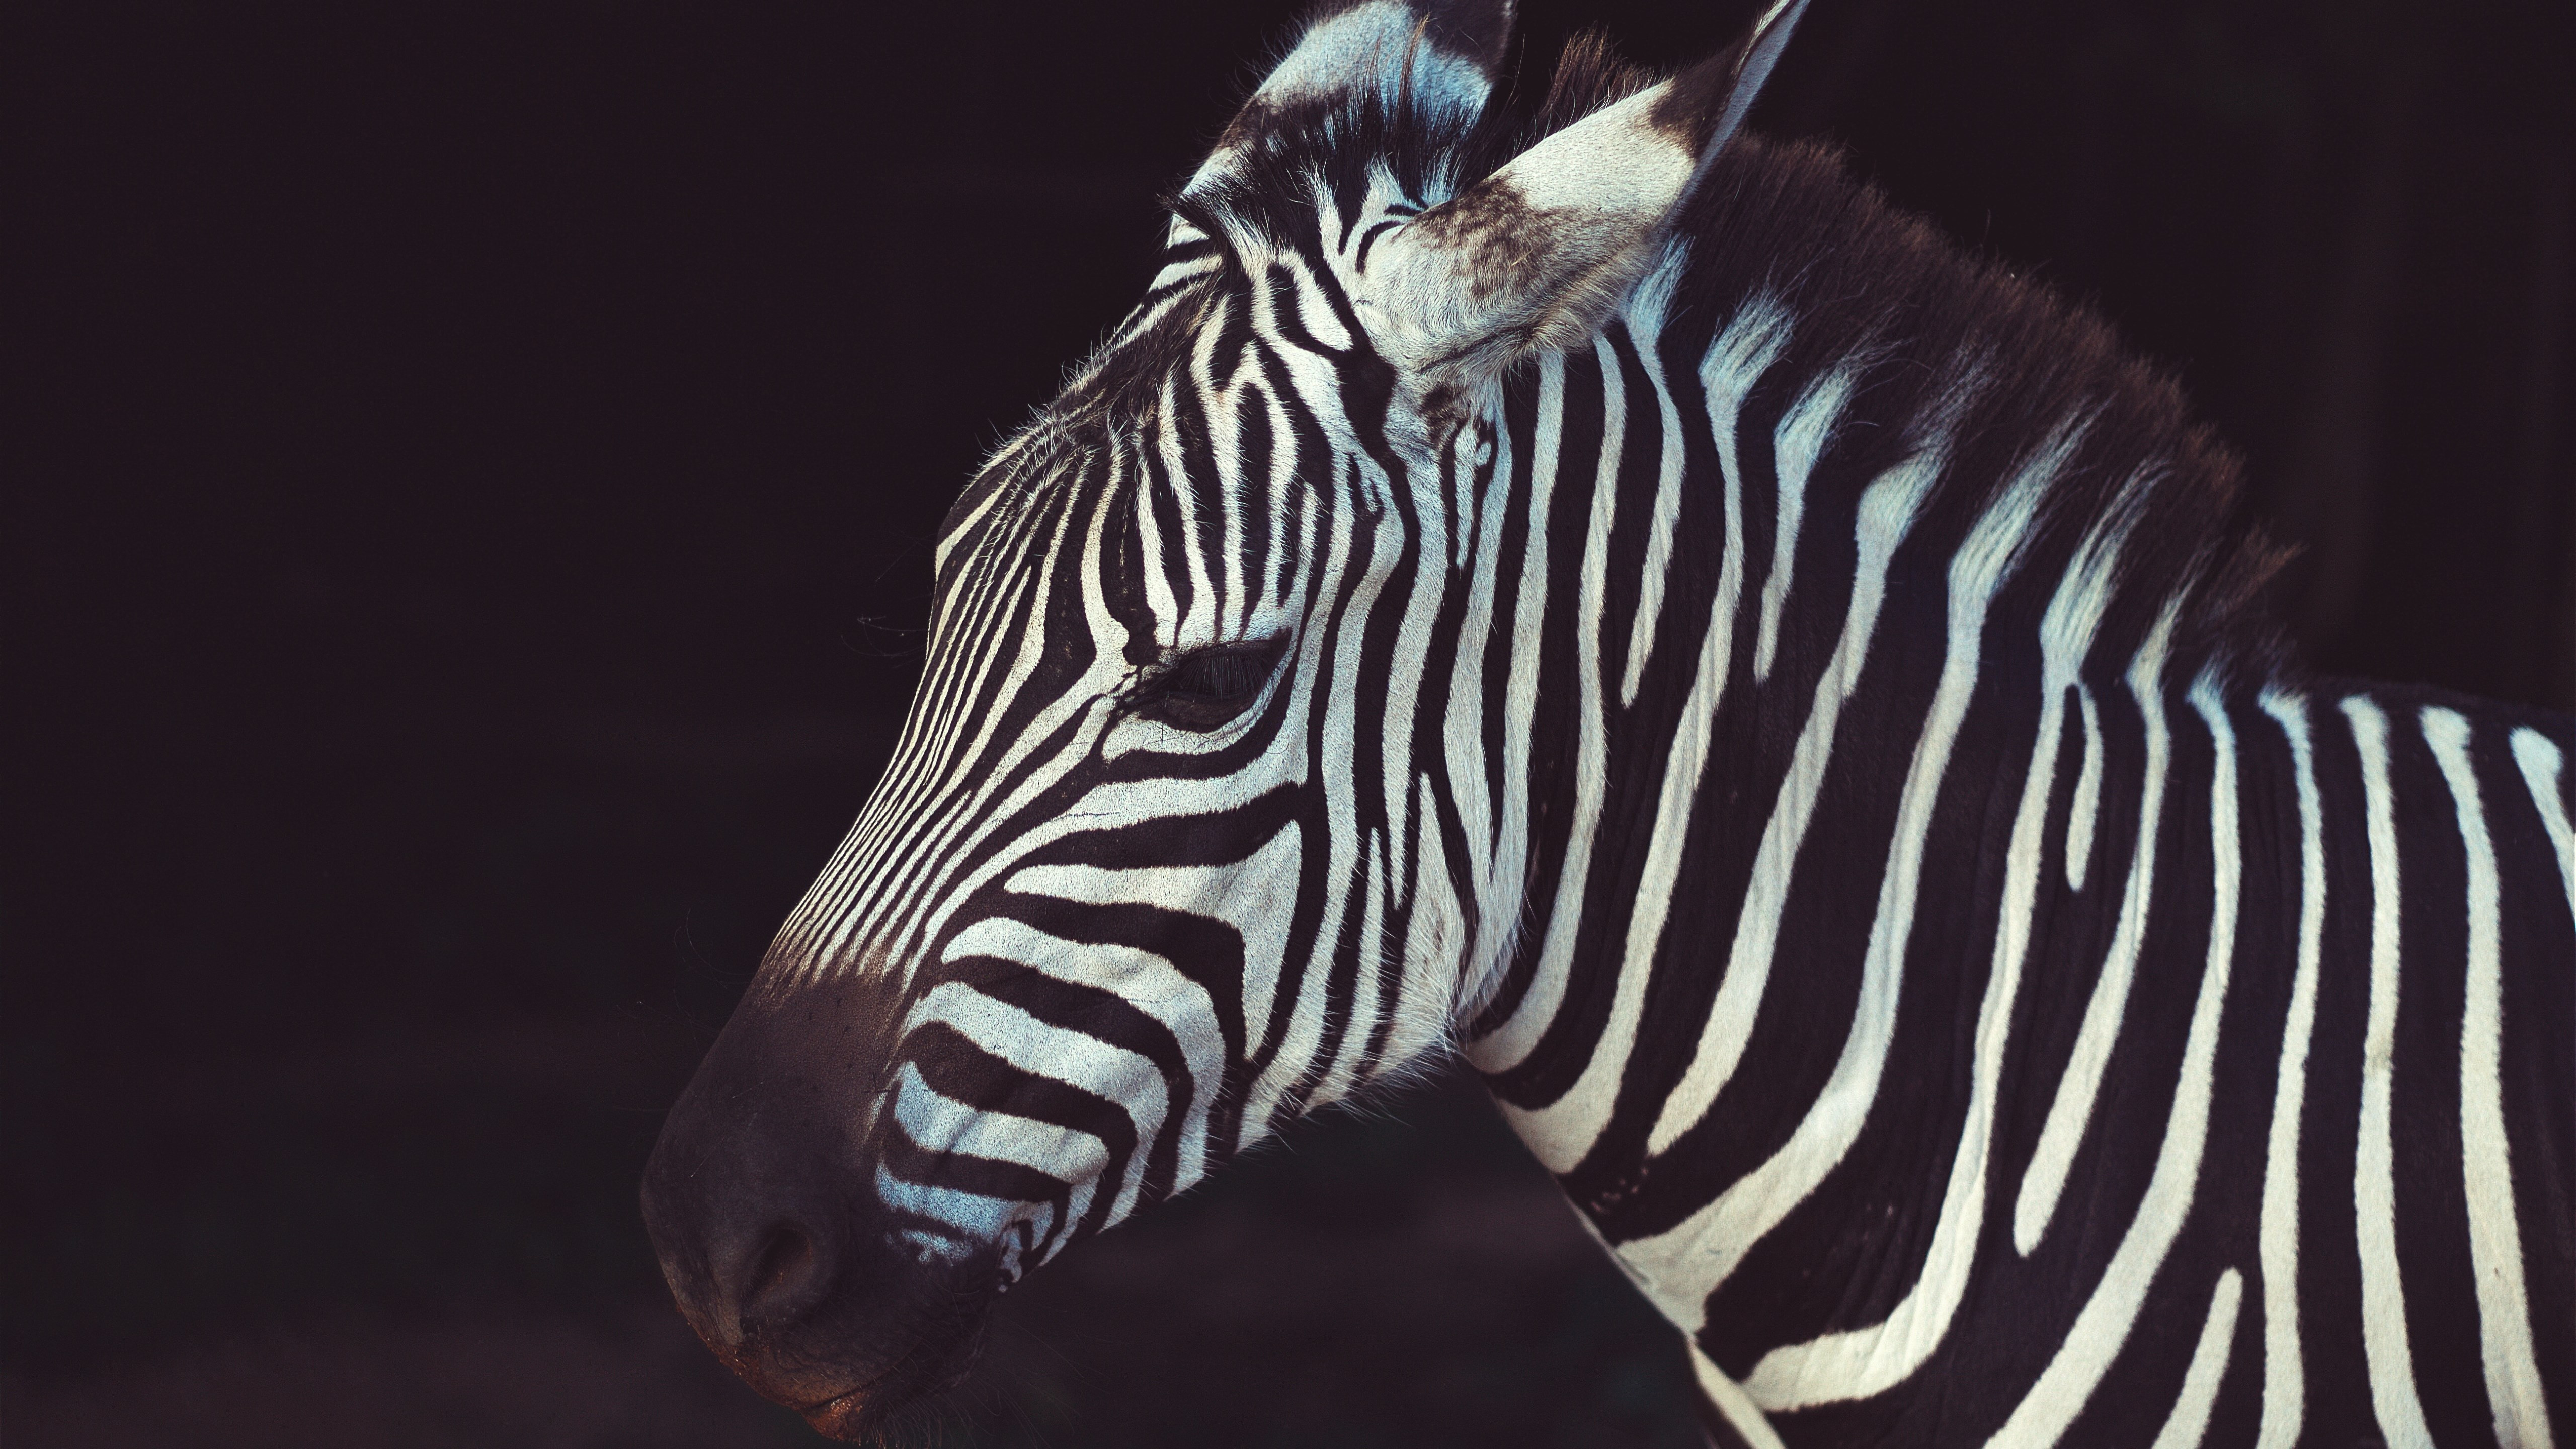 Zebra portrait from Greeneville Zoo, USA wallpaper 5120x2880